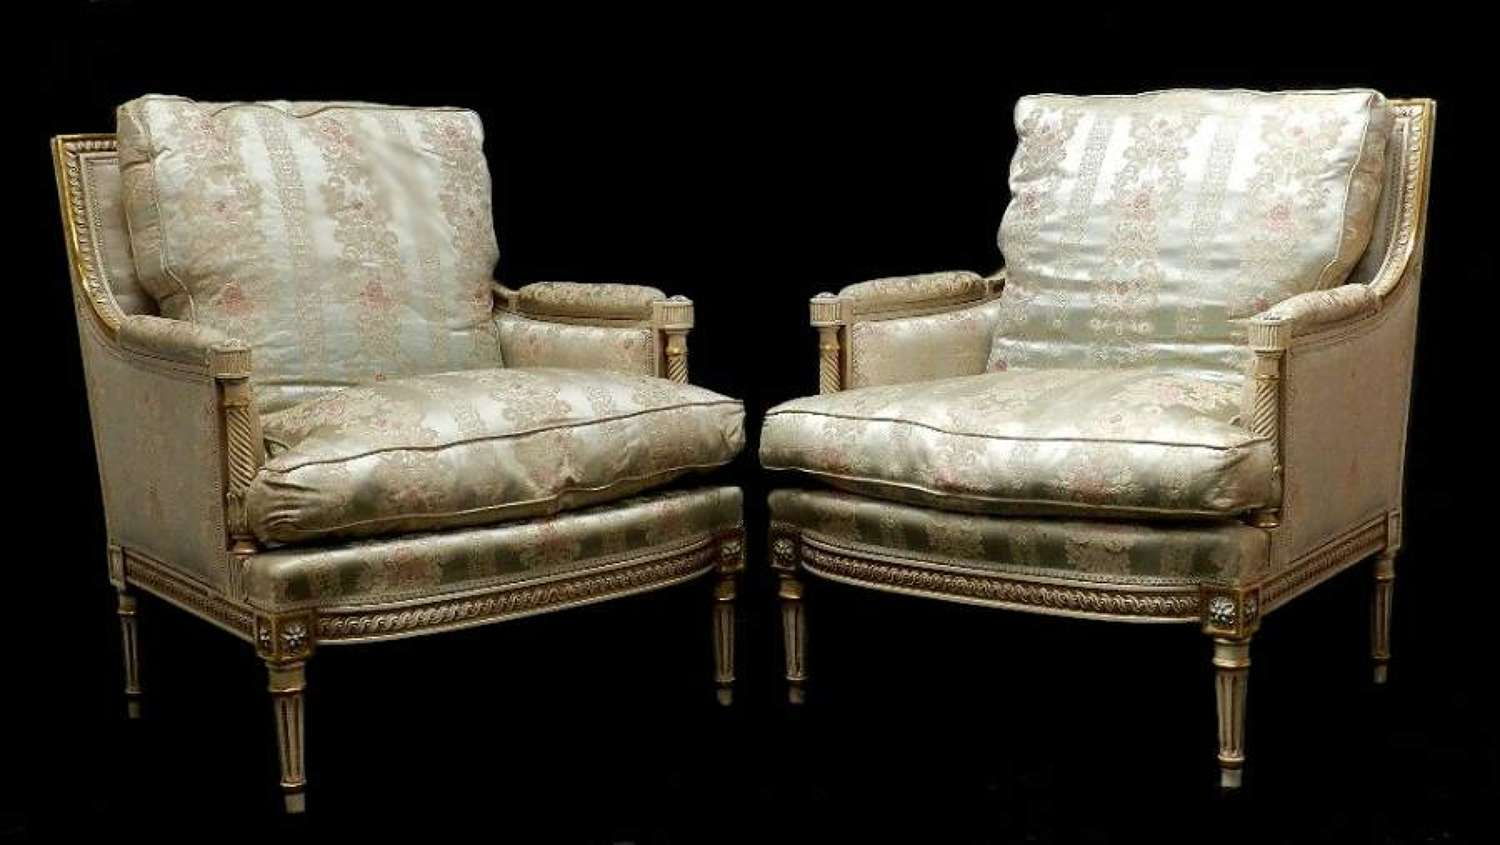 Pair of Louis XVI revival French Armchairs Fauteuils